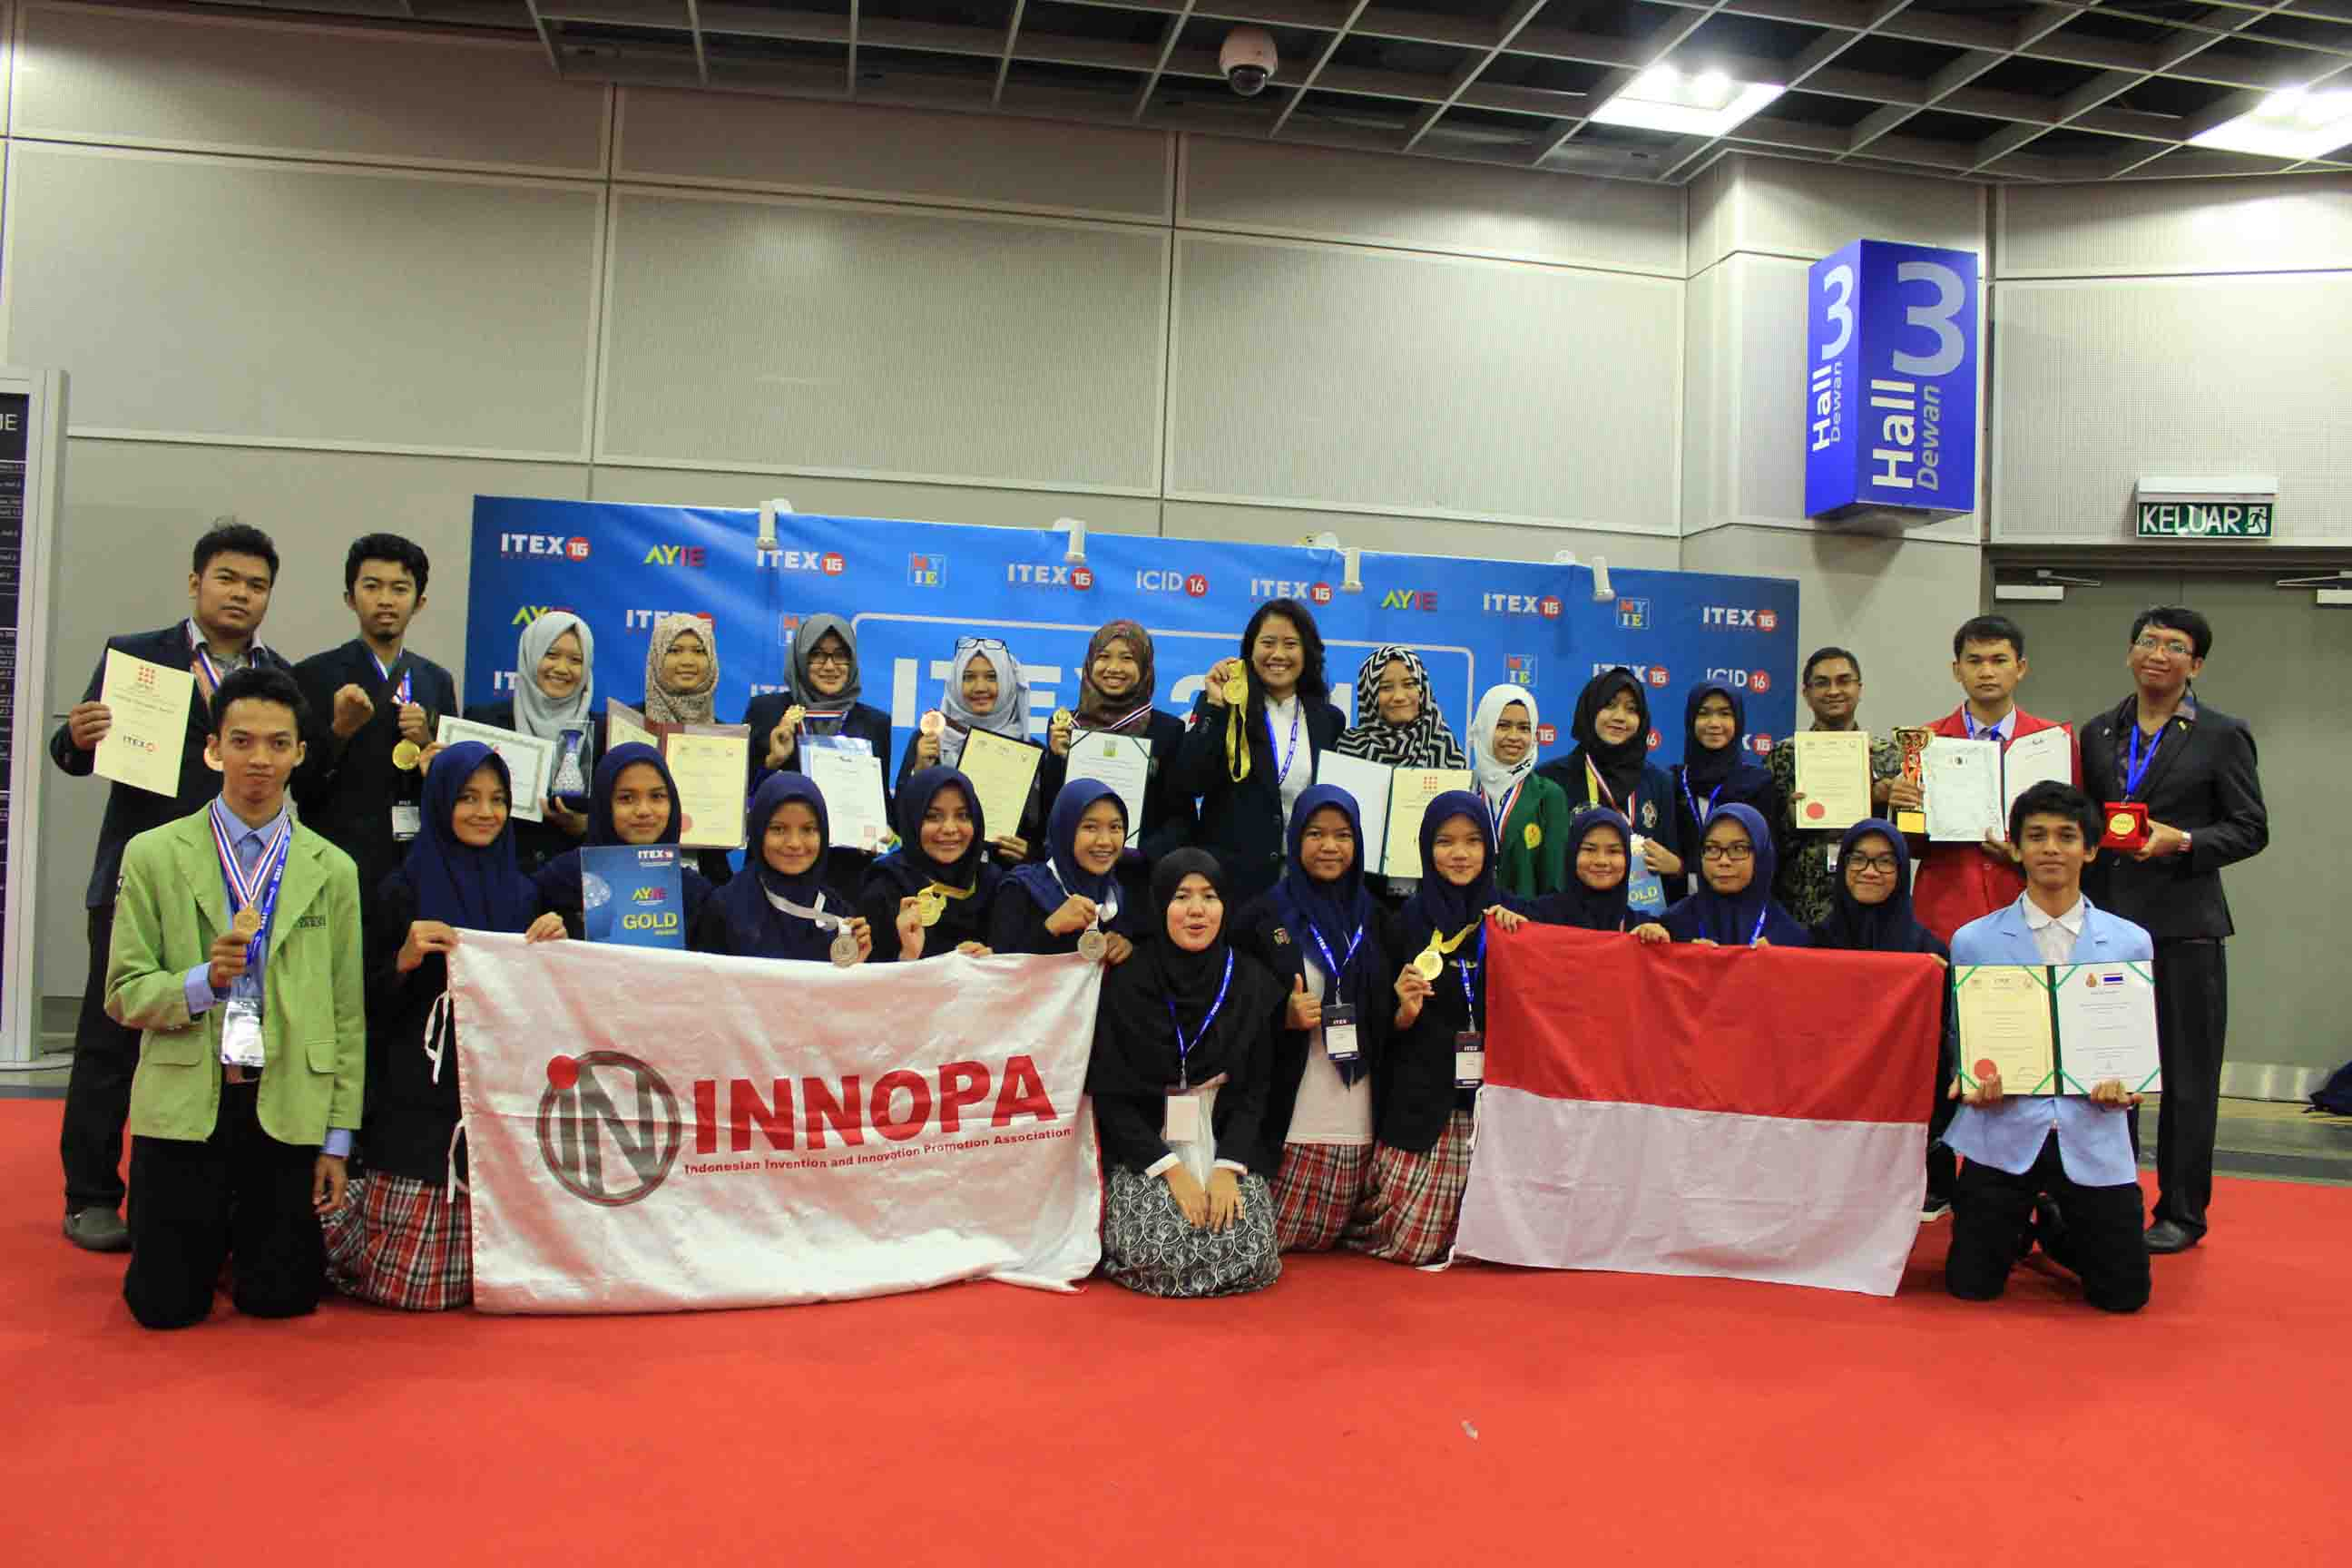 International Invention, Innovation, & Technology Exhibition (ITEX) World Young Inventors Exhibition (WYIE)